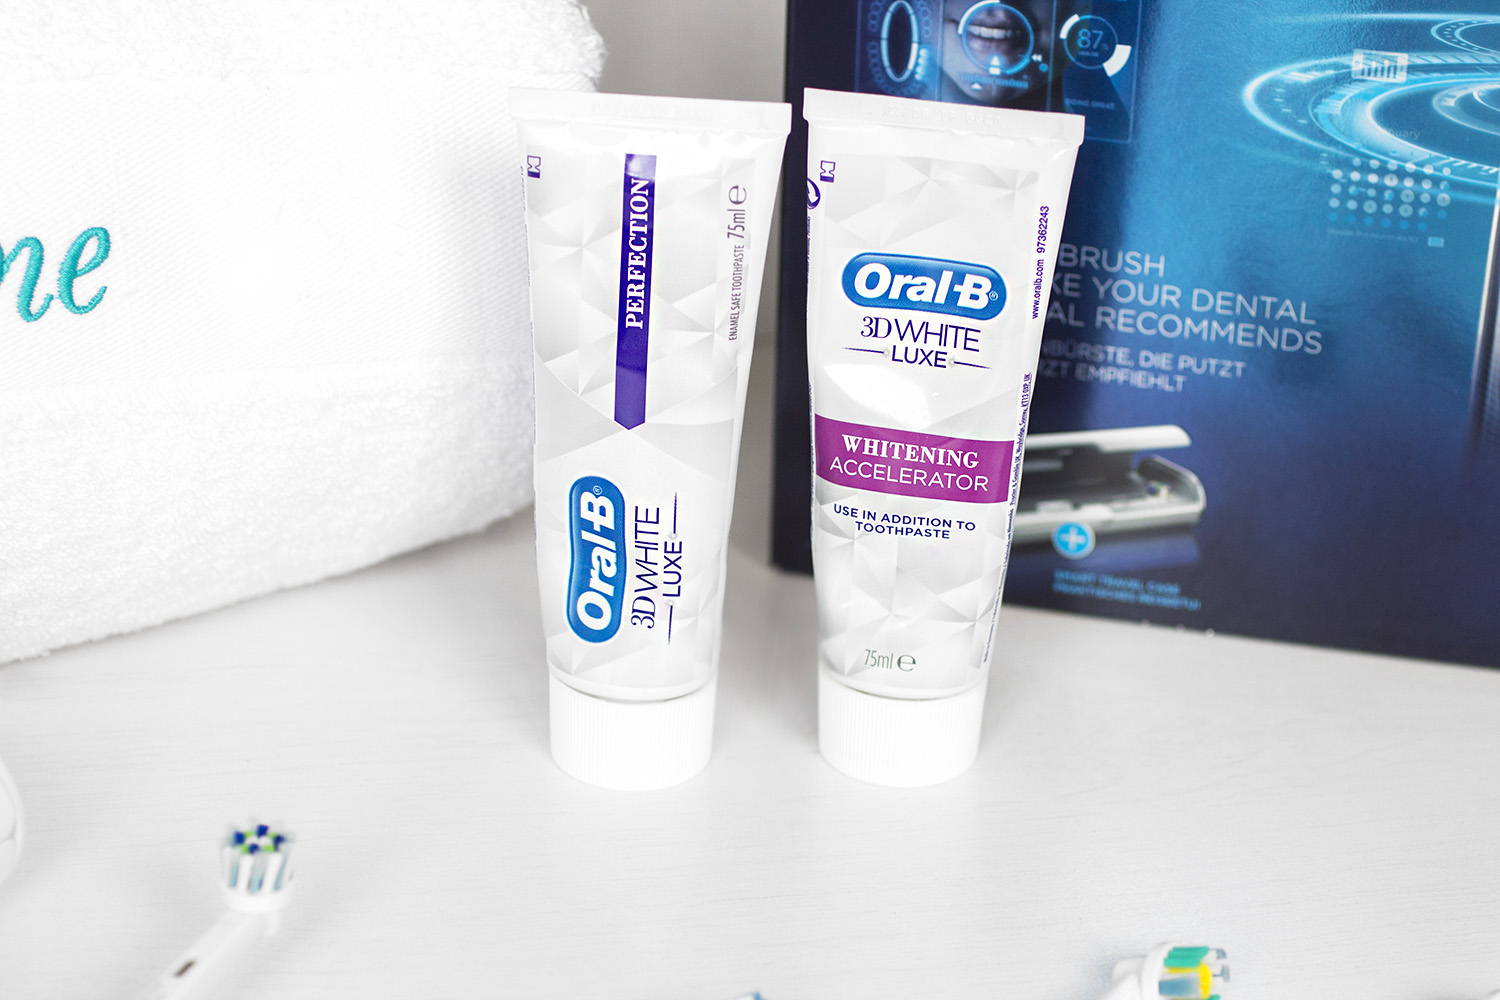 Brosse à dents Genius 9000 - Oral-B